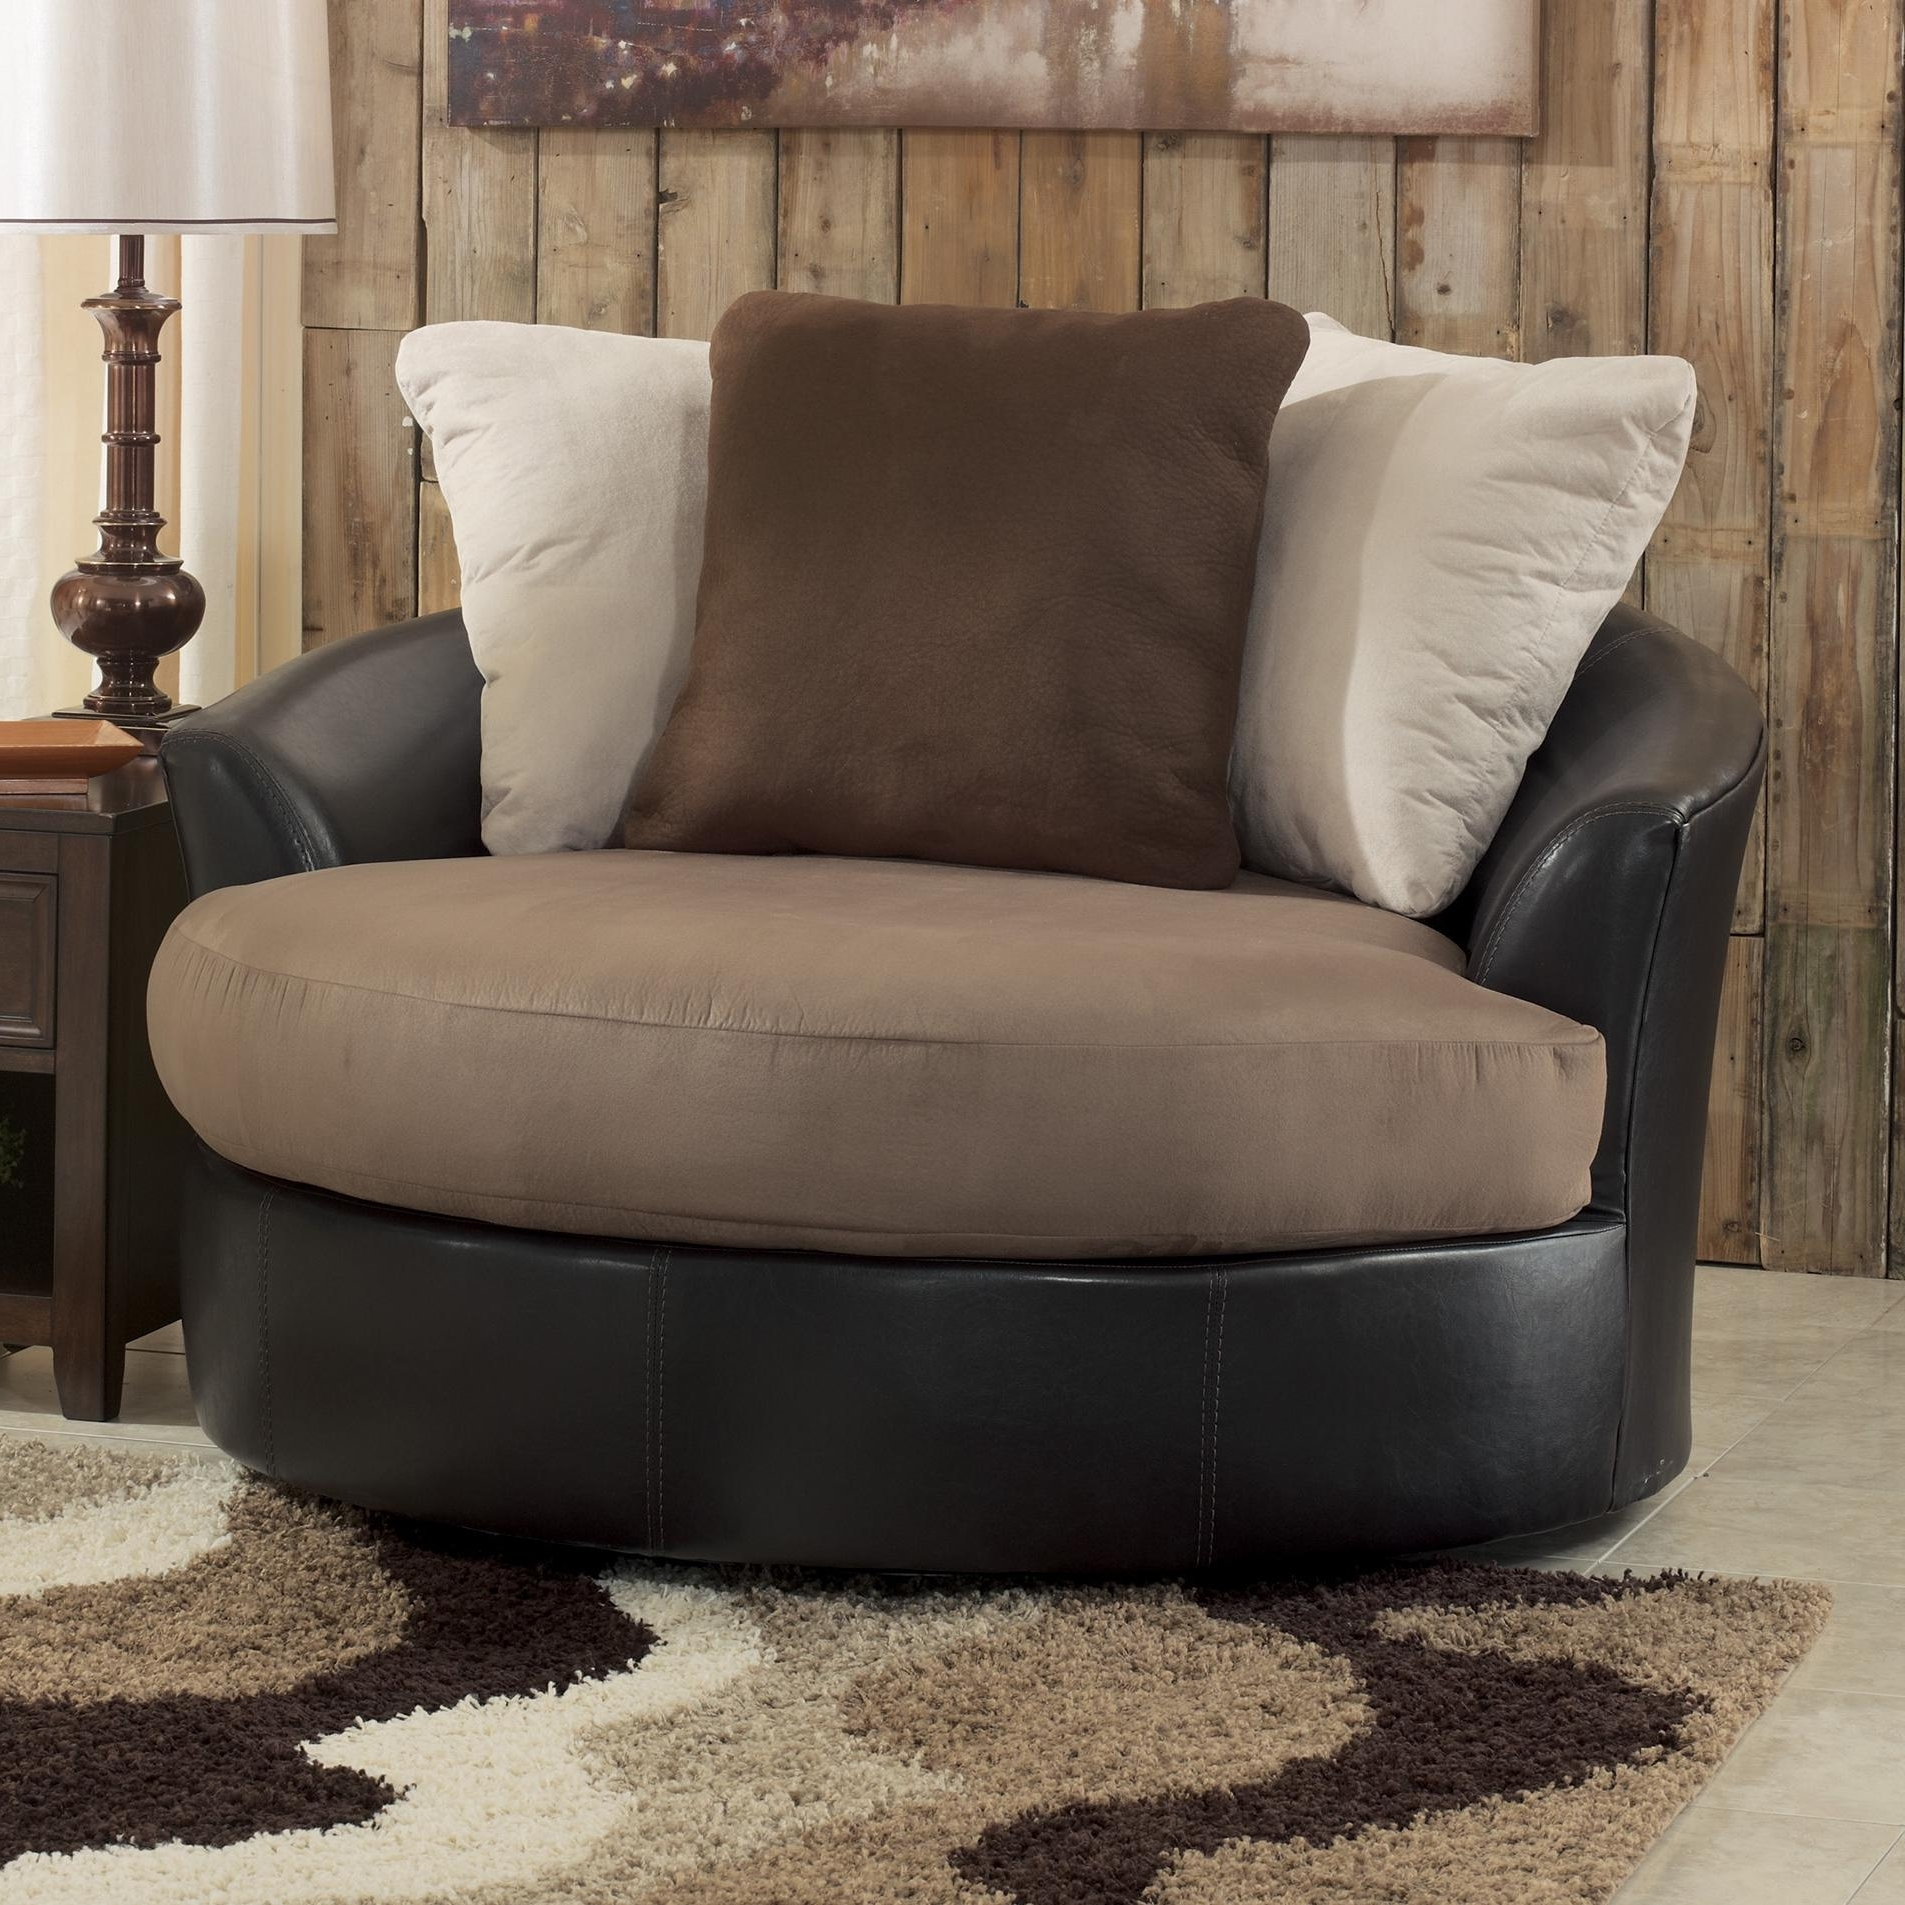 Large Sofa Chairs For Trendy Sofa : Excellent Round Sofa Chair Living Room Furniture Harveys (View 7 of 20)